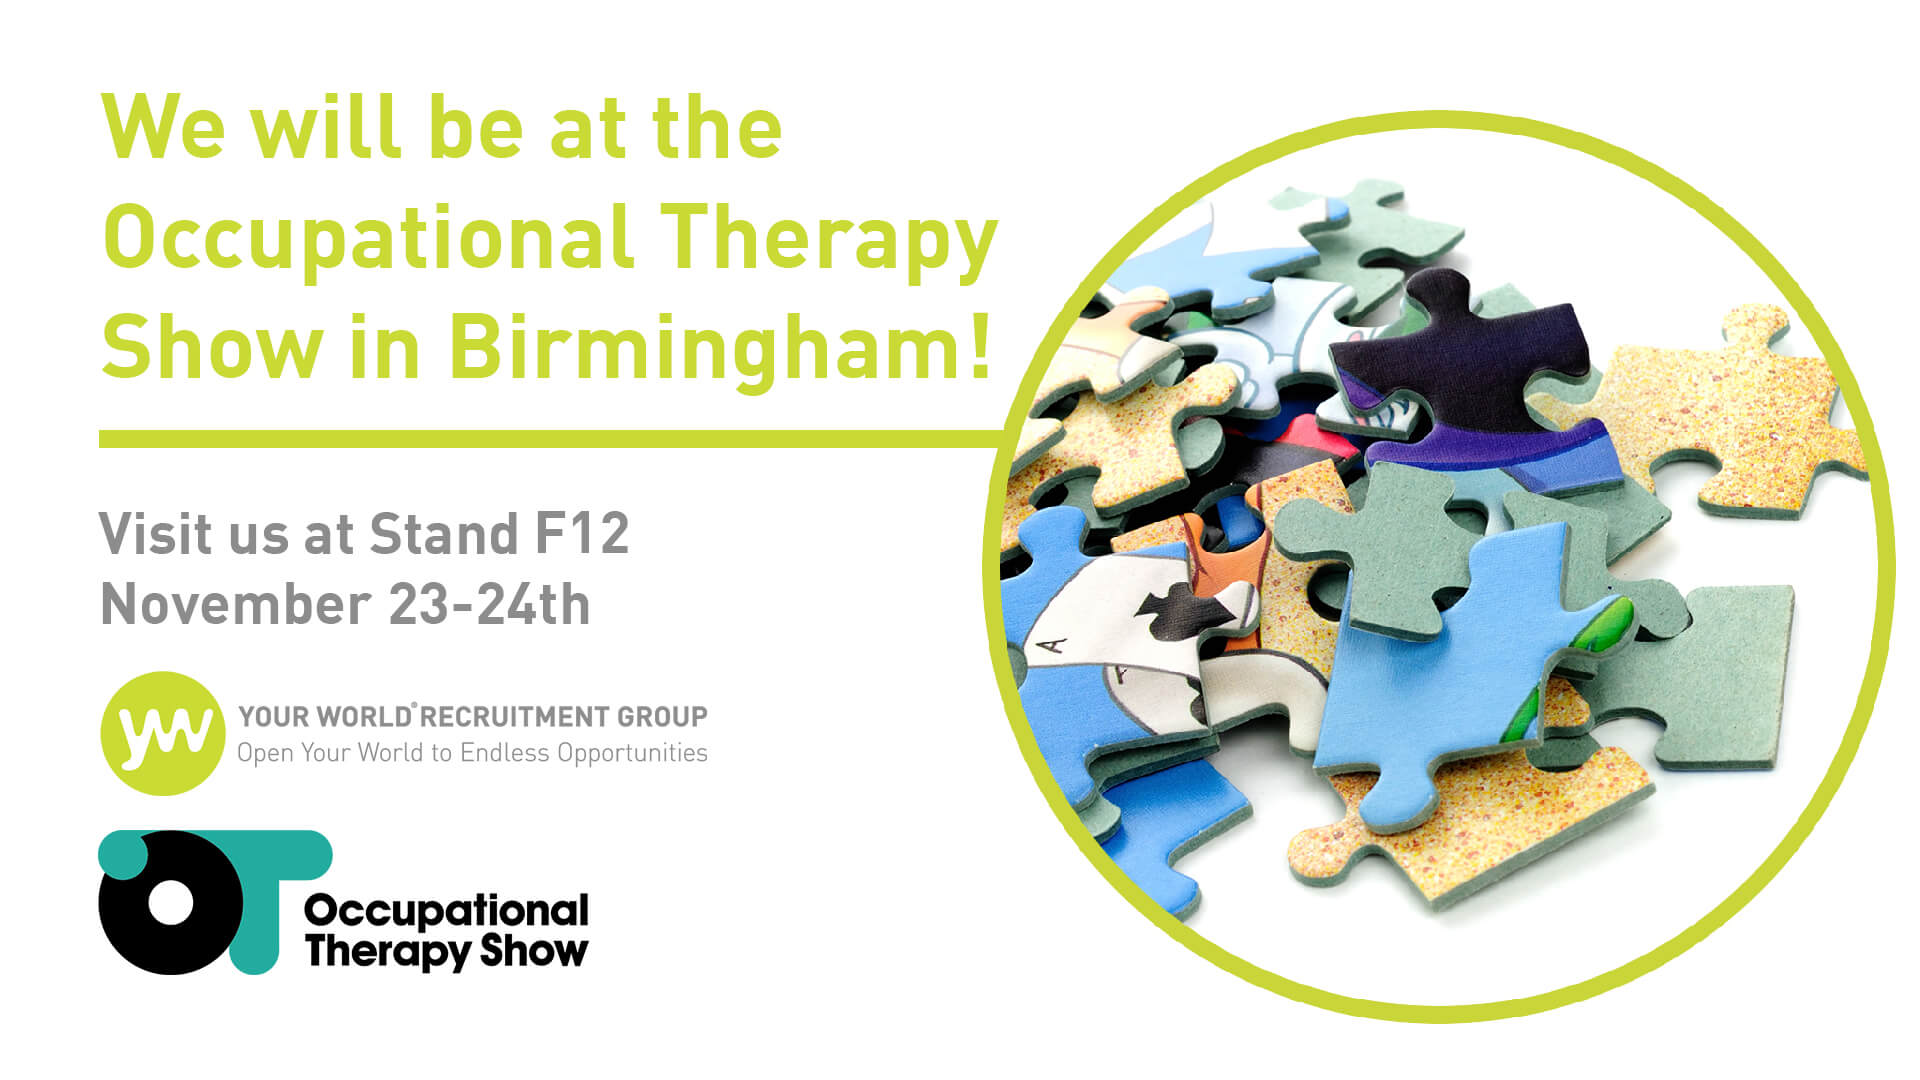 The OT Show is FREE to Attend!